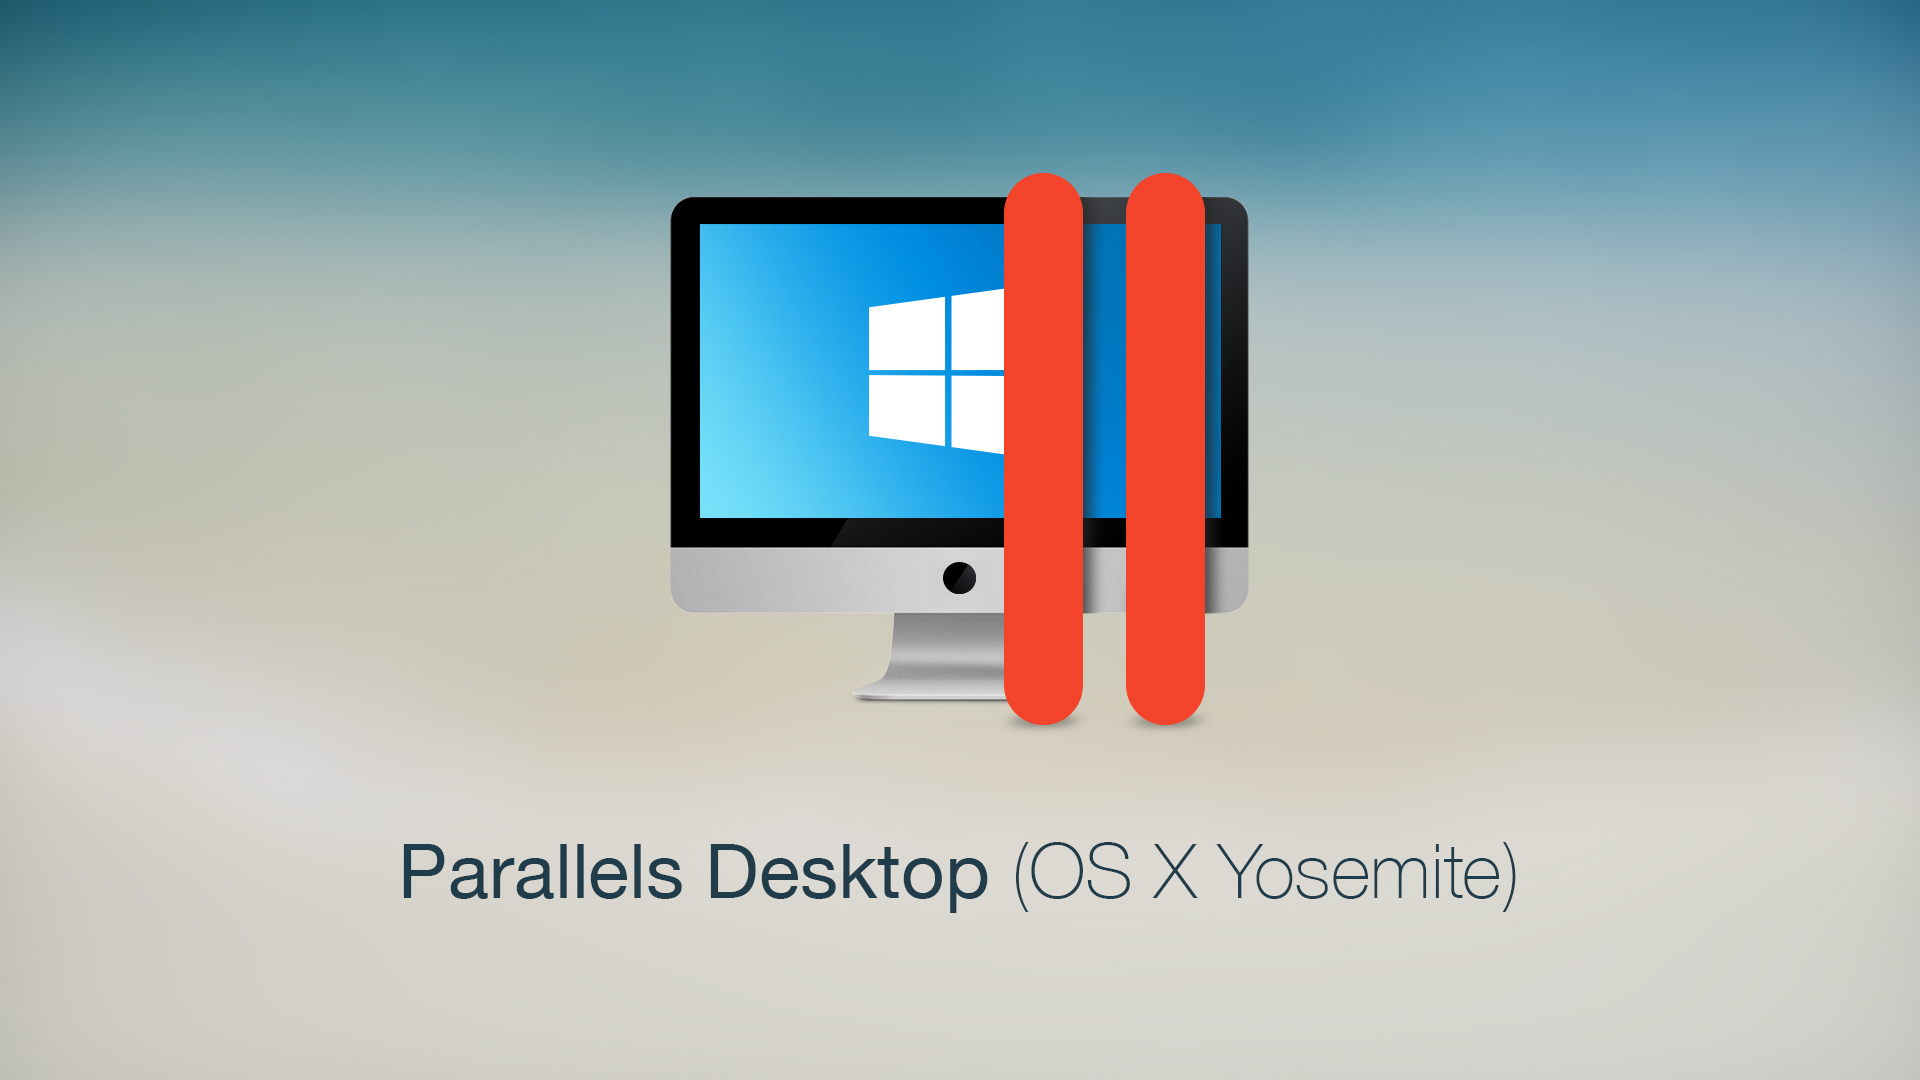 parallels desktop icon os x yosemite by baklay